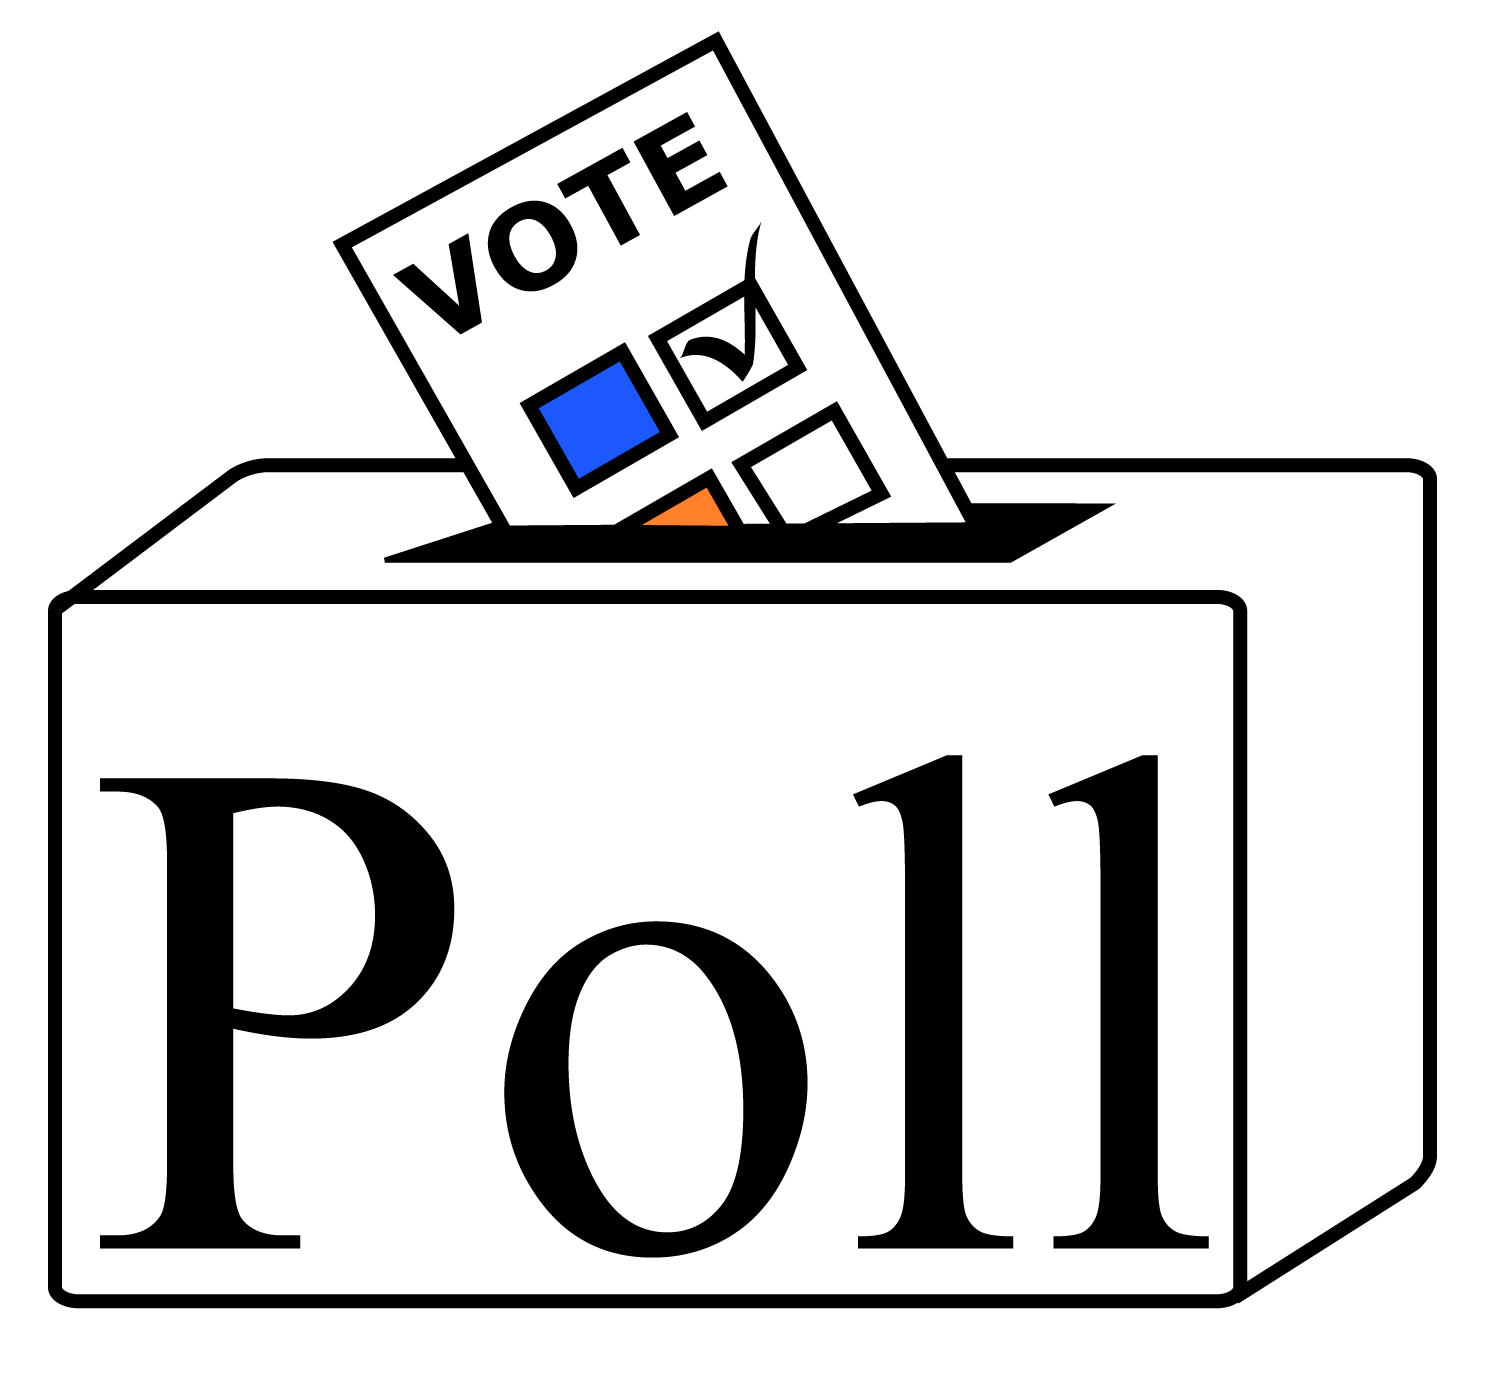 Vote for me black and white clipart picture free library Vote For Me Logo Png Images picture free library